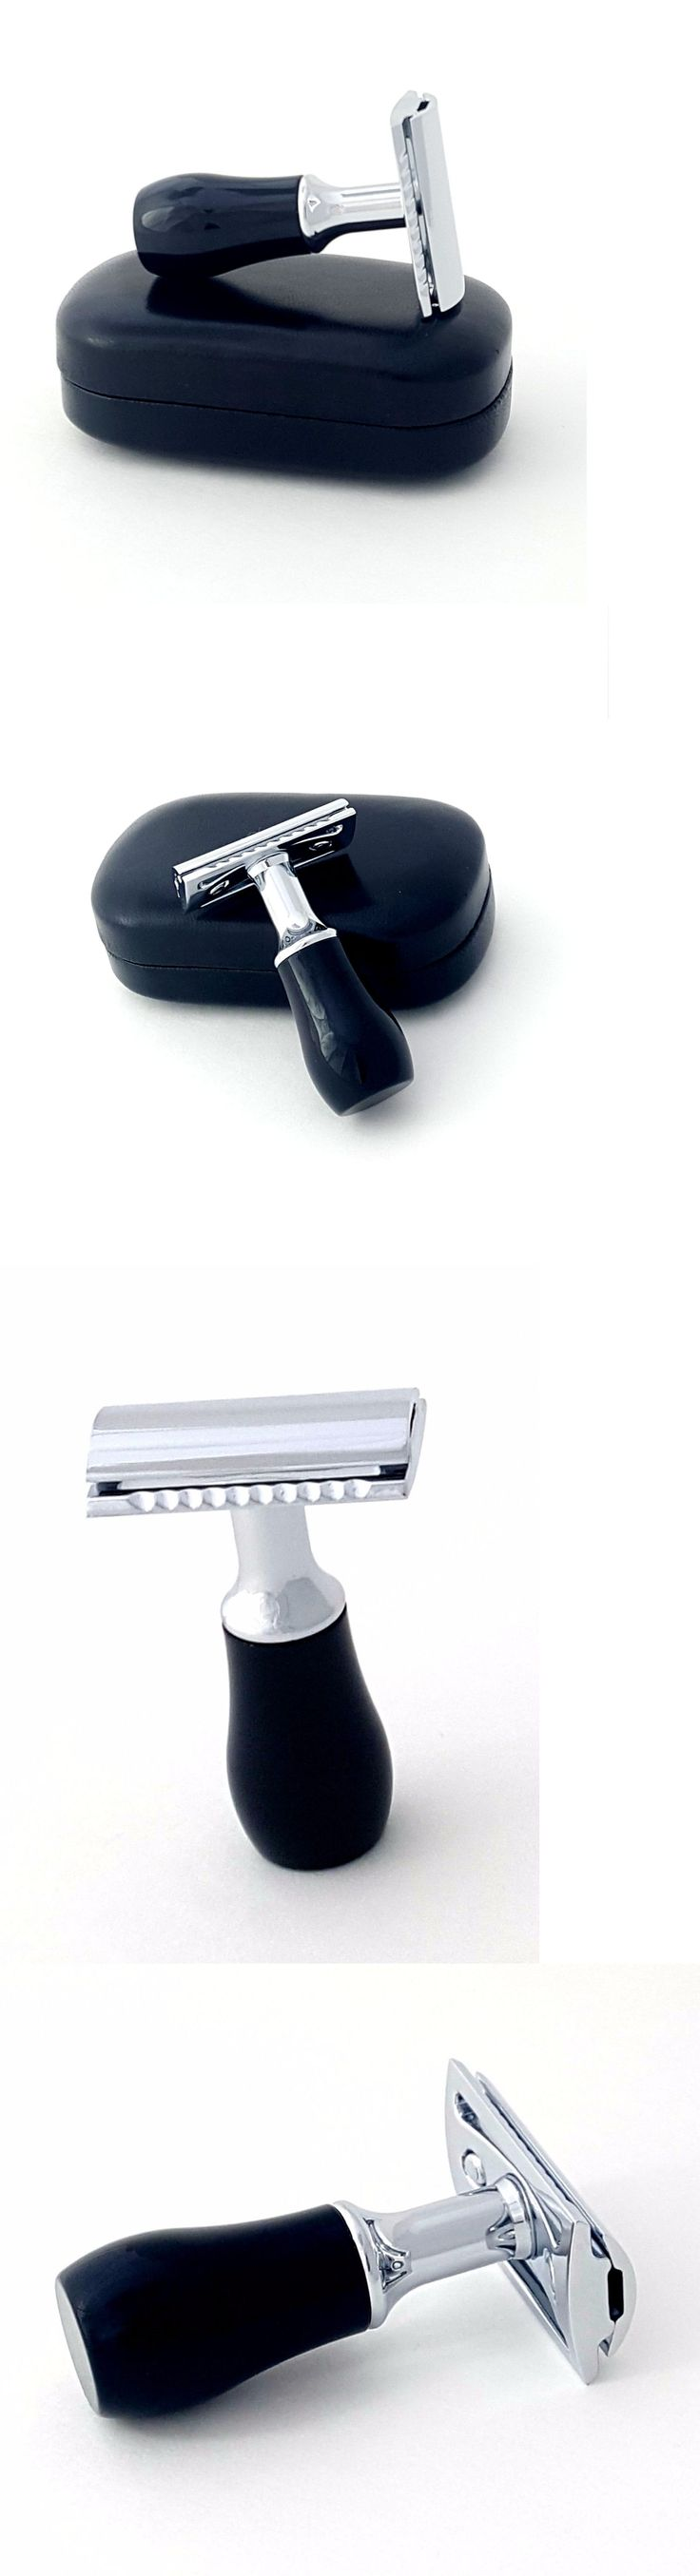 Mens Razors: Travel Mini Shaving Safety Razor Black Handle With Hard Carrying Case And Blade -> BUY IT NOW ONLY: $49.99 on eBay!